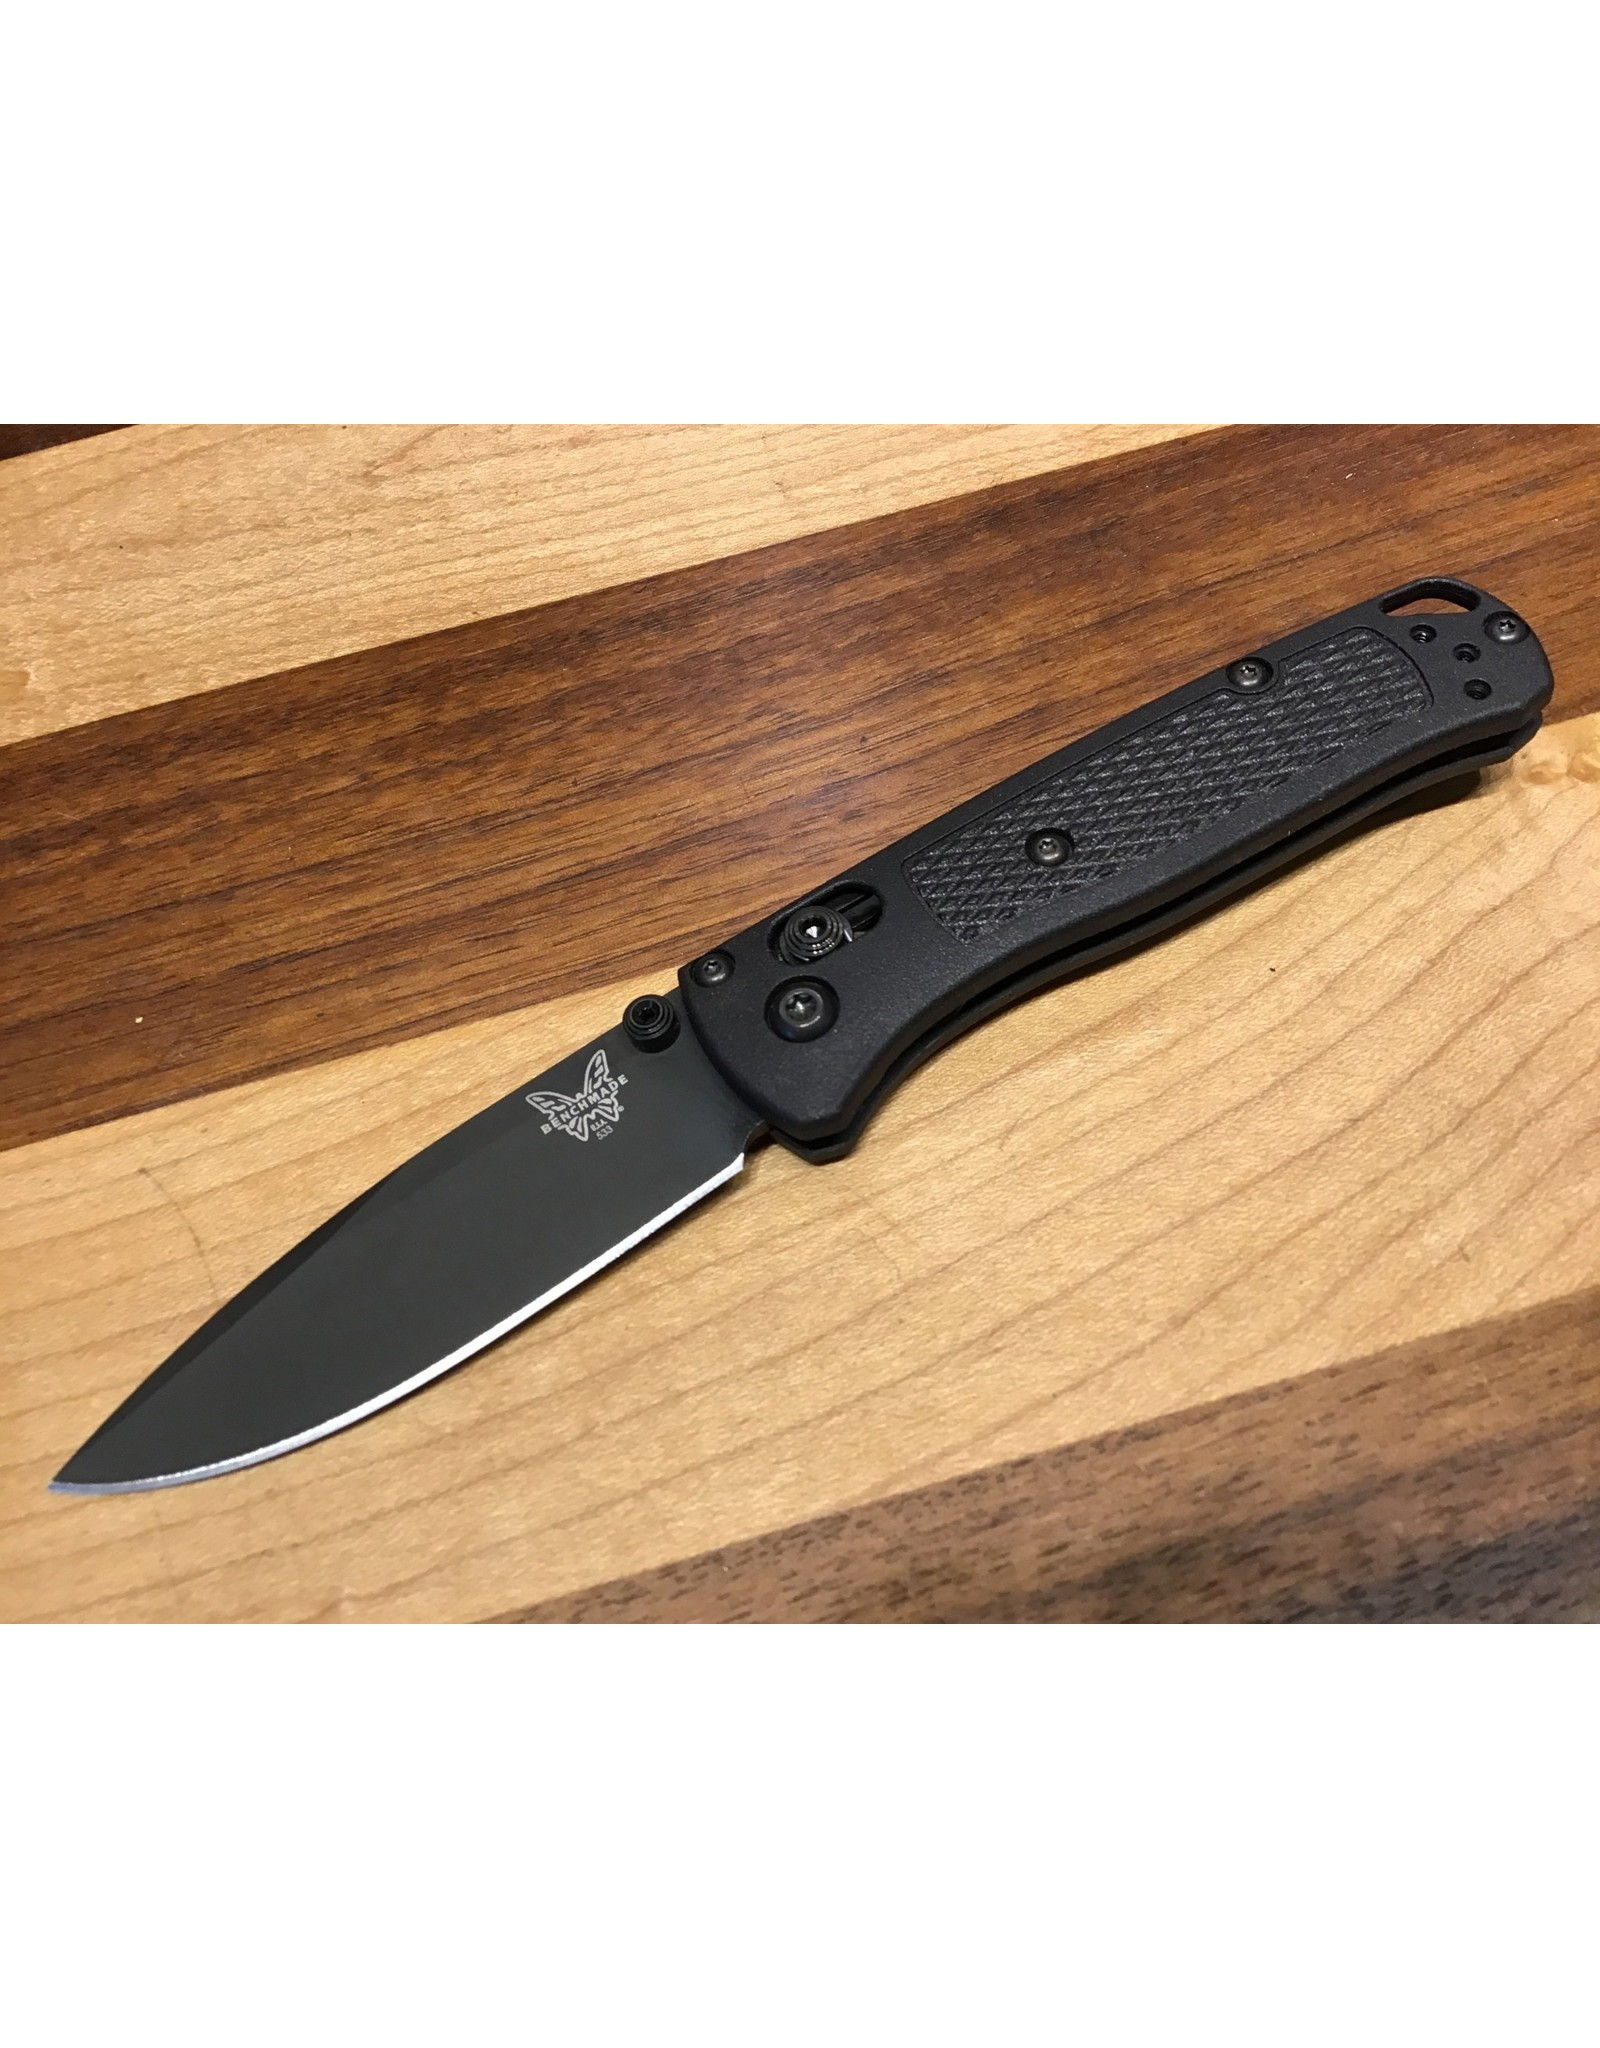 Benchmade Mini Bugout - Blacked Out